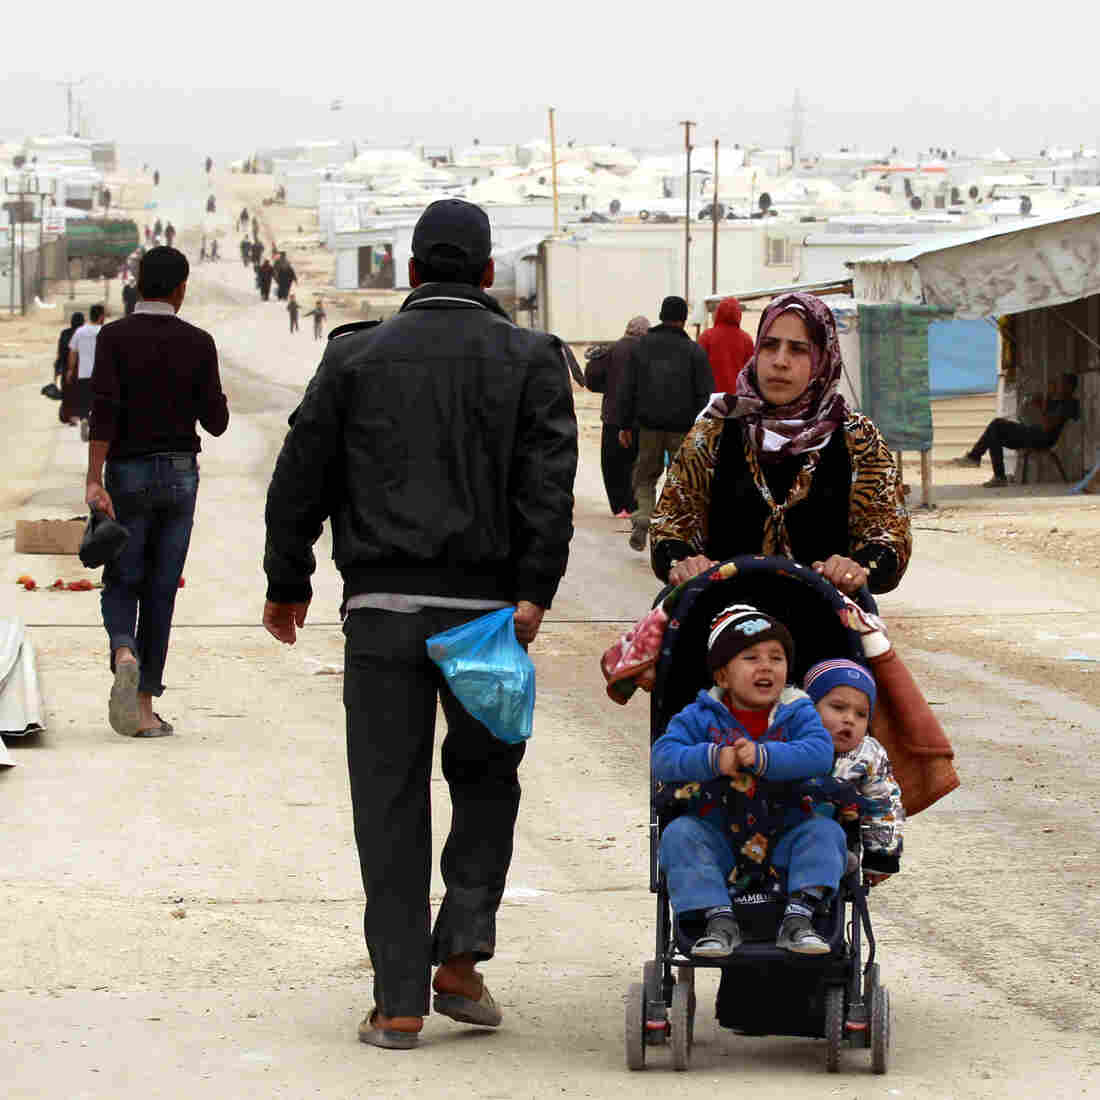 Syrian refugees have flooded the Zaatari refugee camp, near the Jordanian border with Syria.